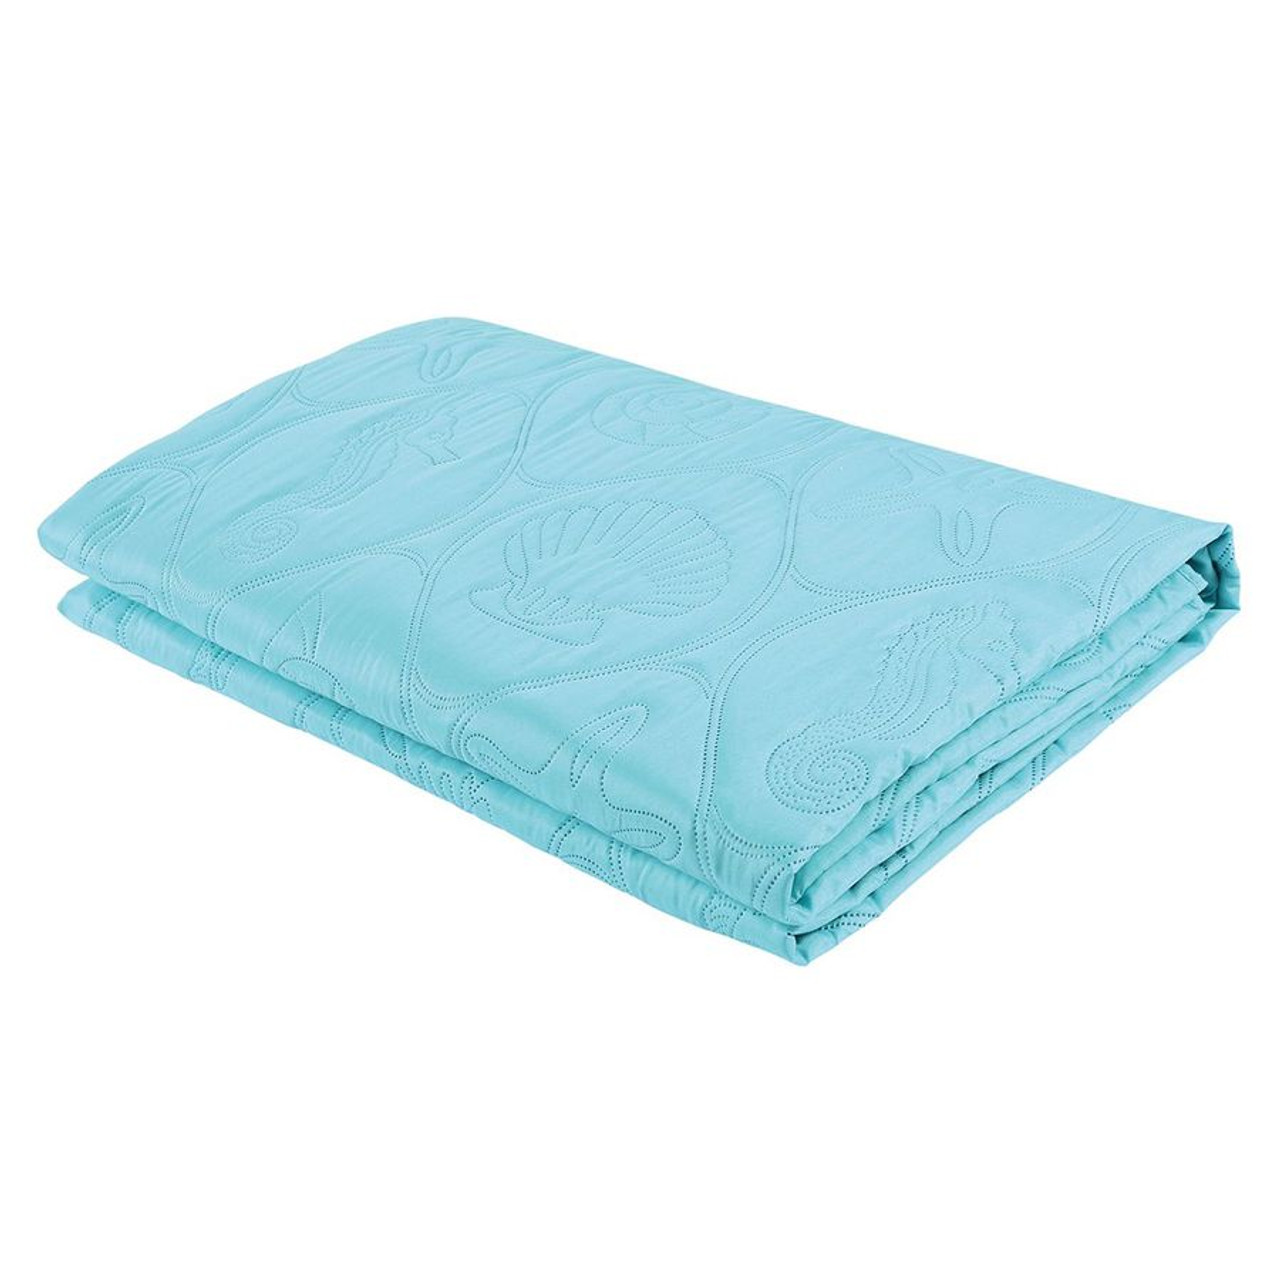 3 PC Shell & Seahorse Stitched Pinsonic Reversible Oversized Bedspread, Turquoise Color